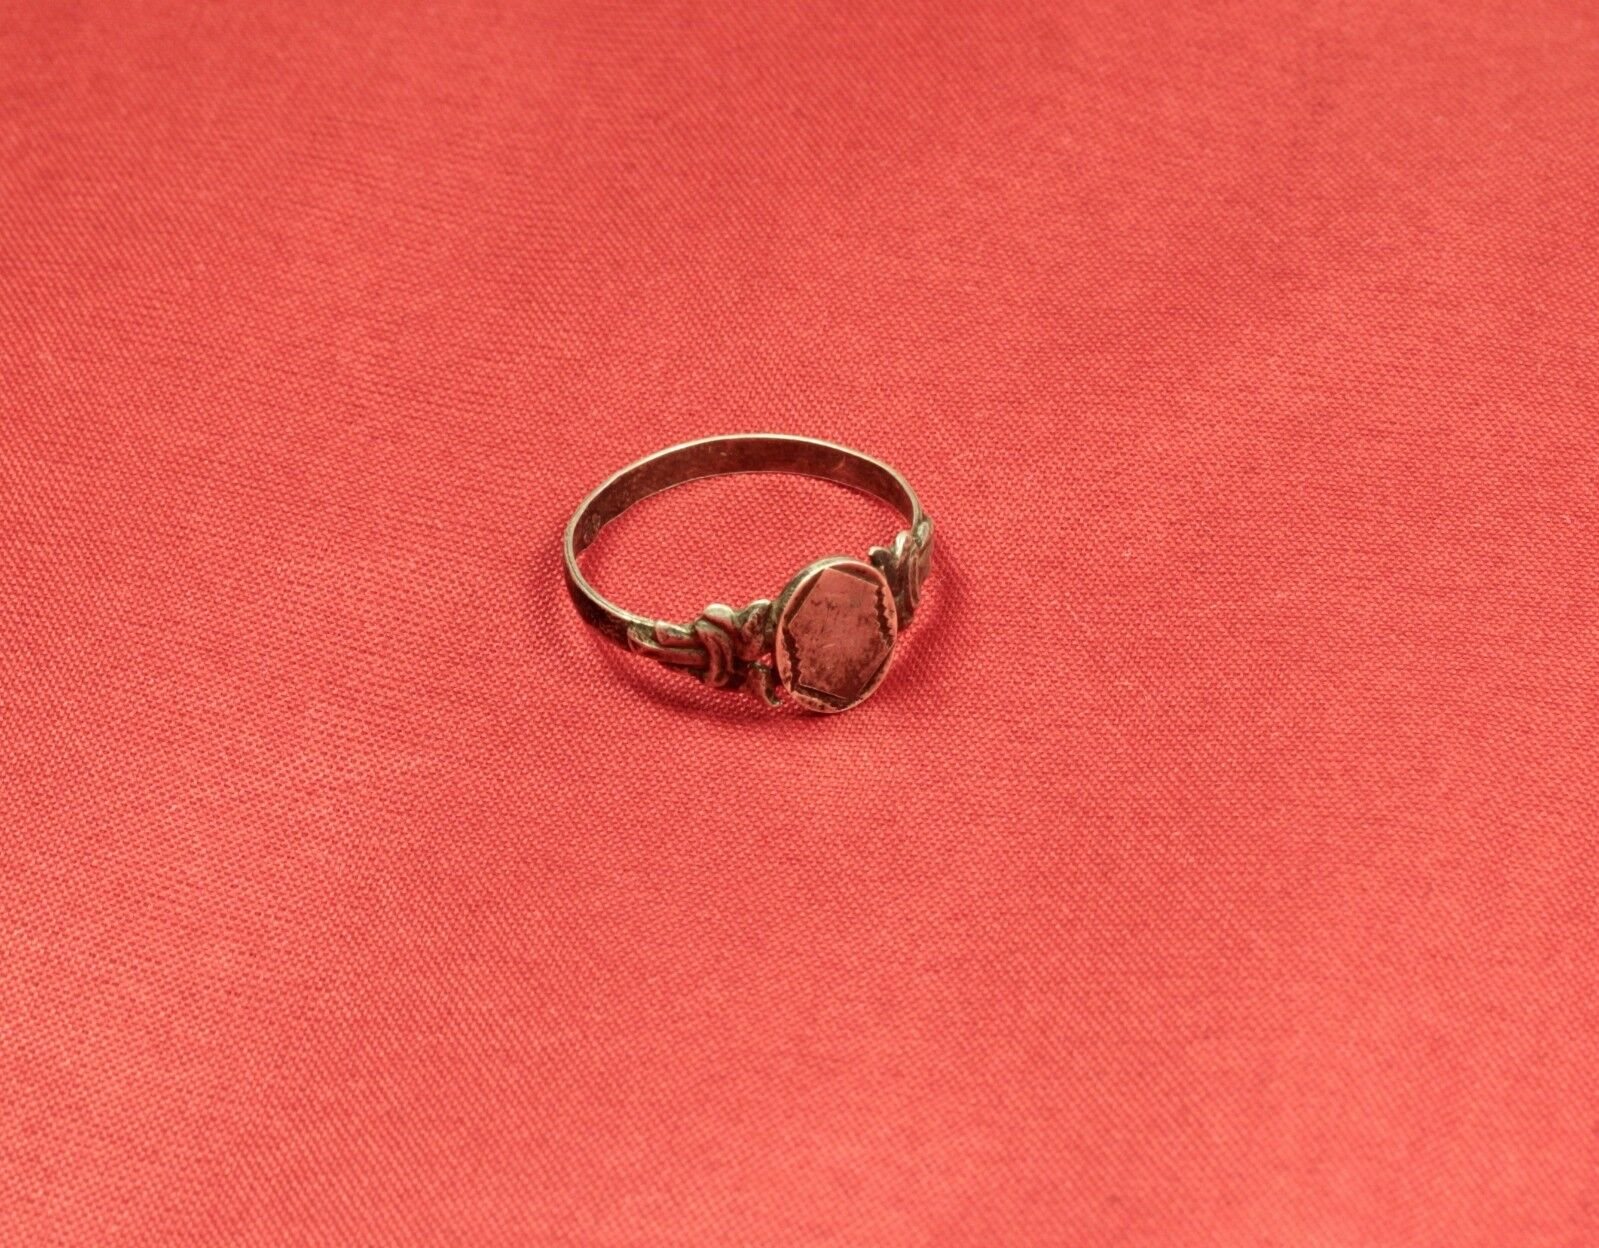 Nice Silver Ring From the 19. Century